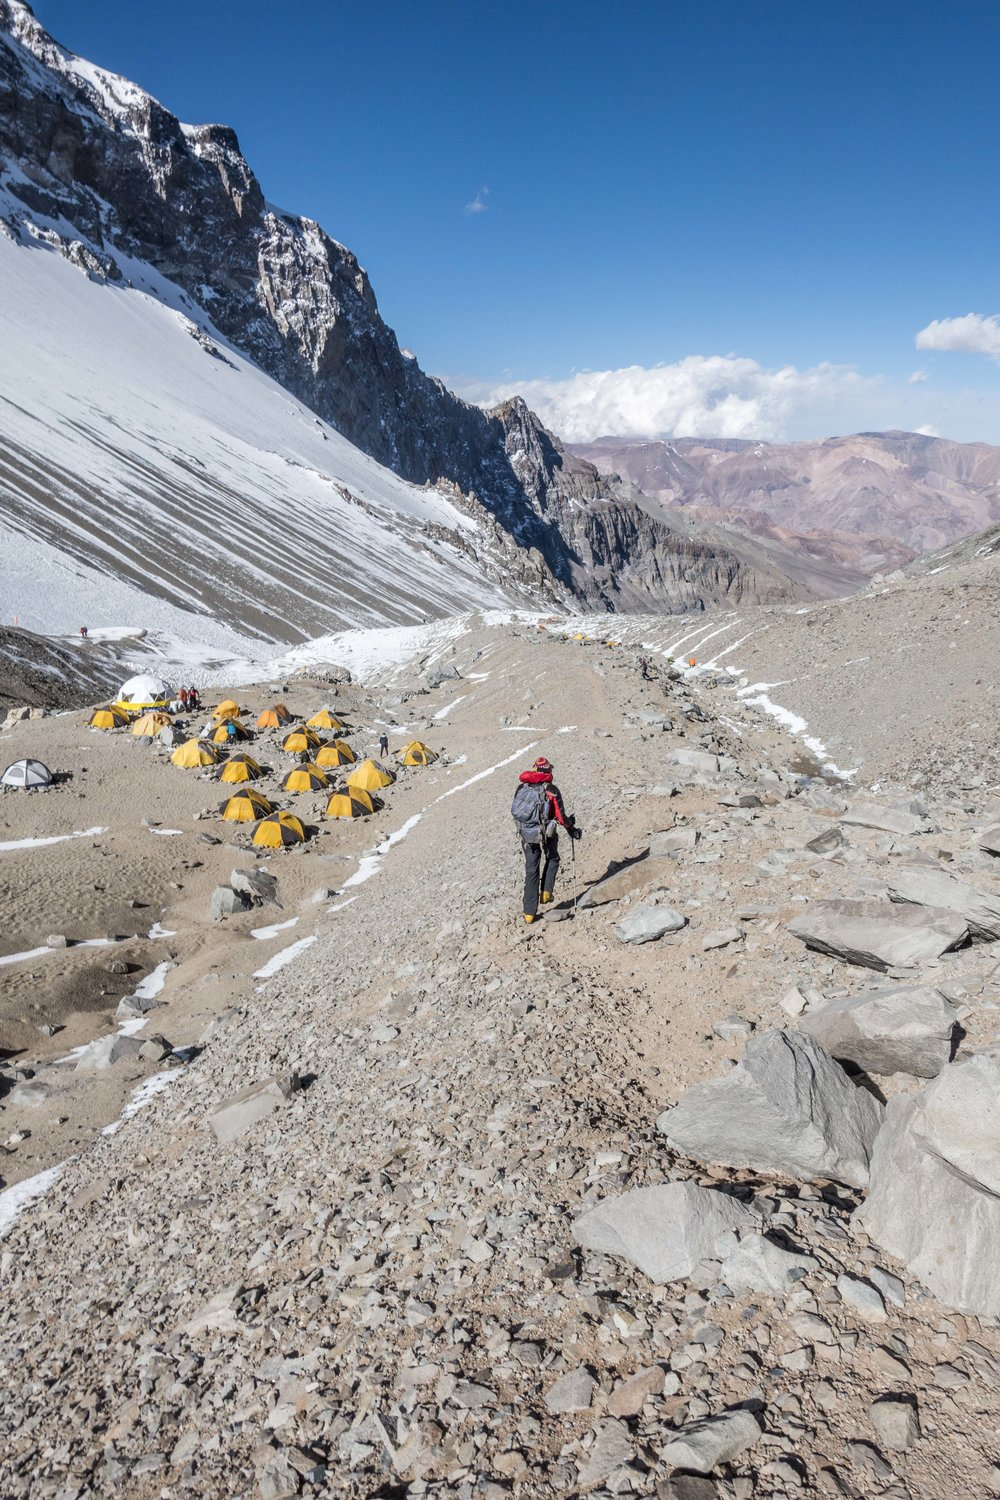 Descending towards Camp I after a successful carry to Camp II